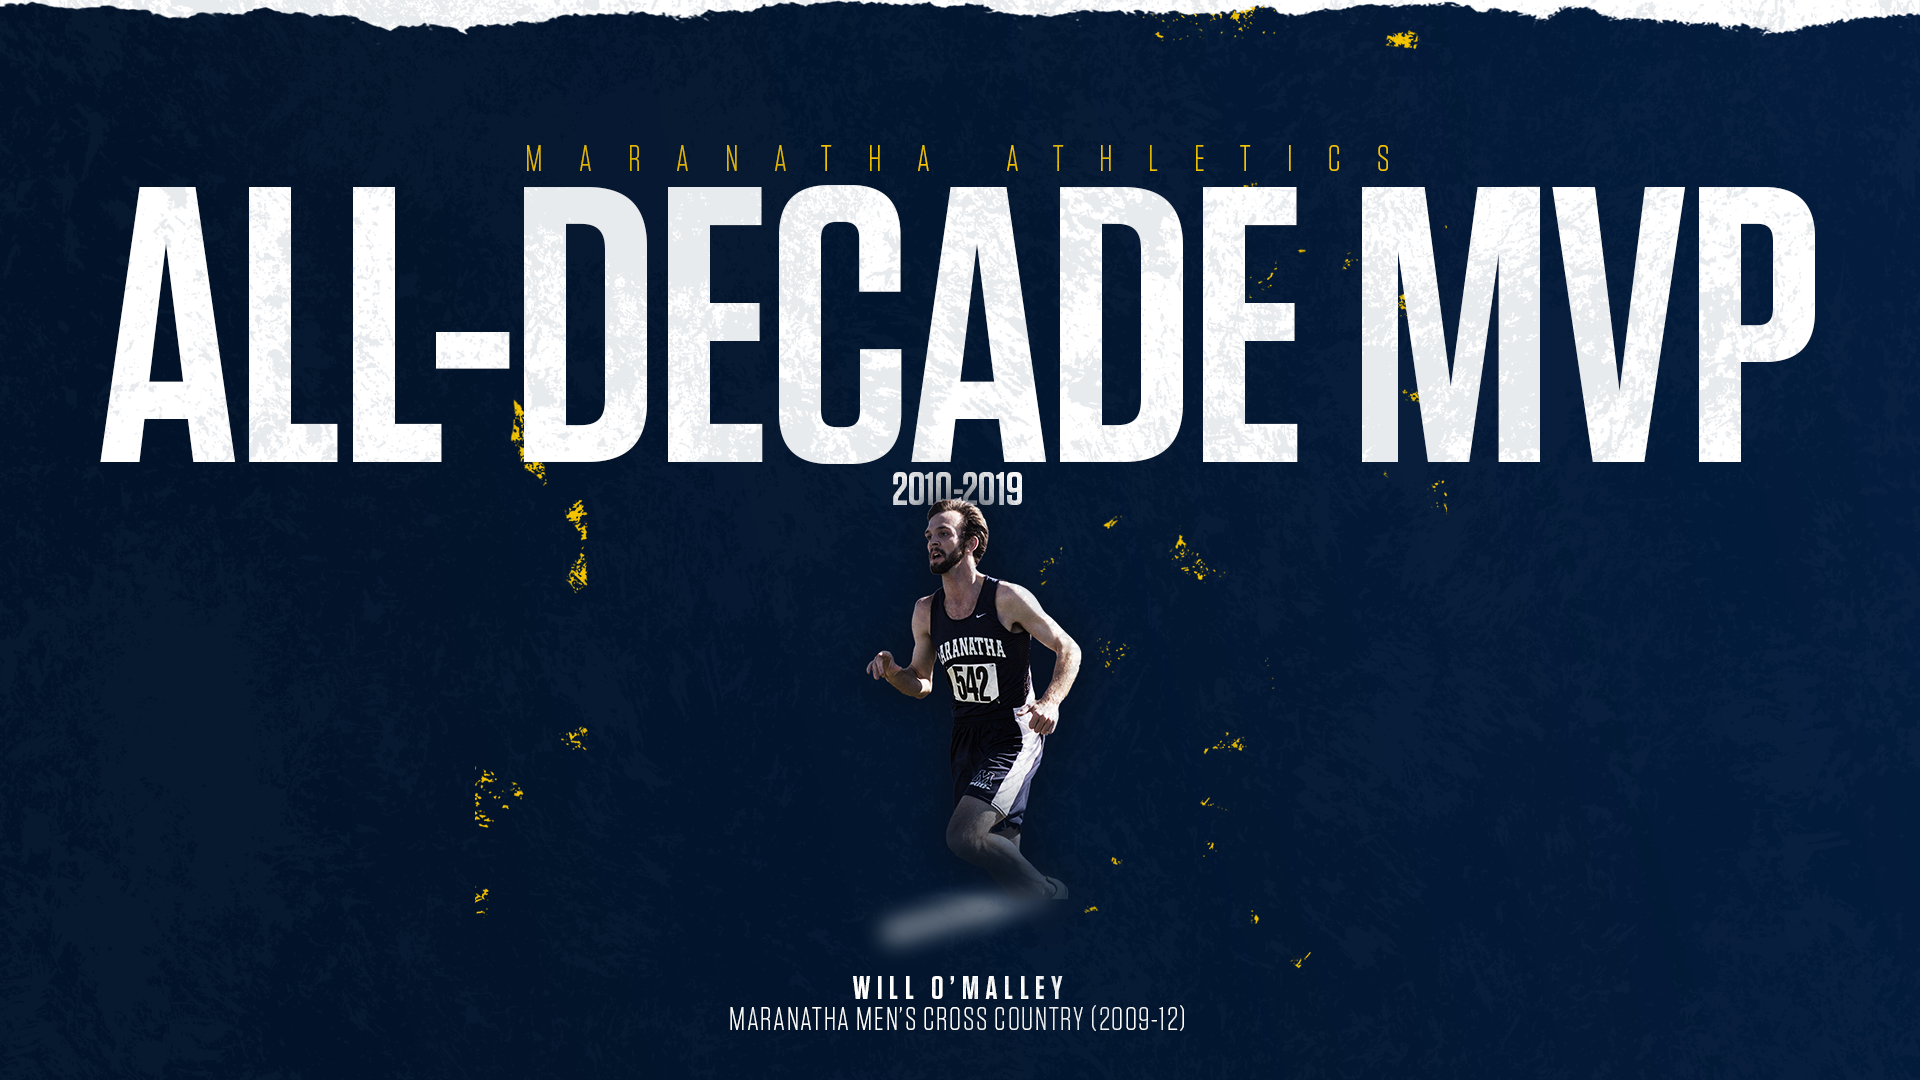 All-Decade MVP: Will O'Malley